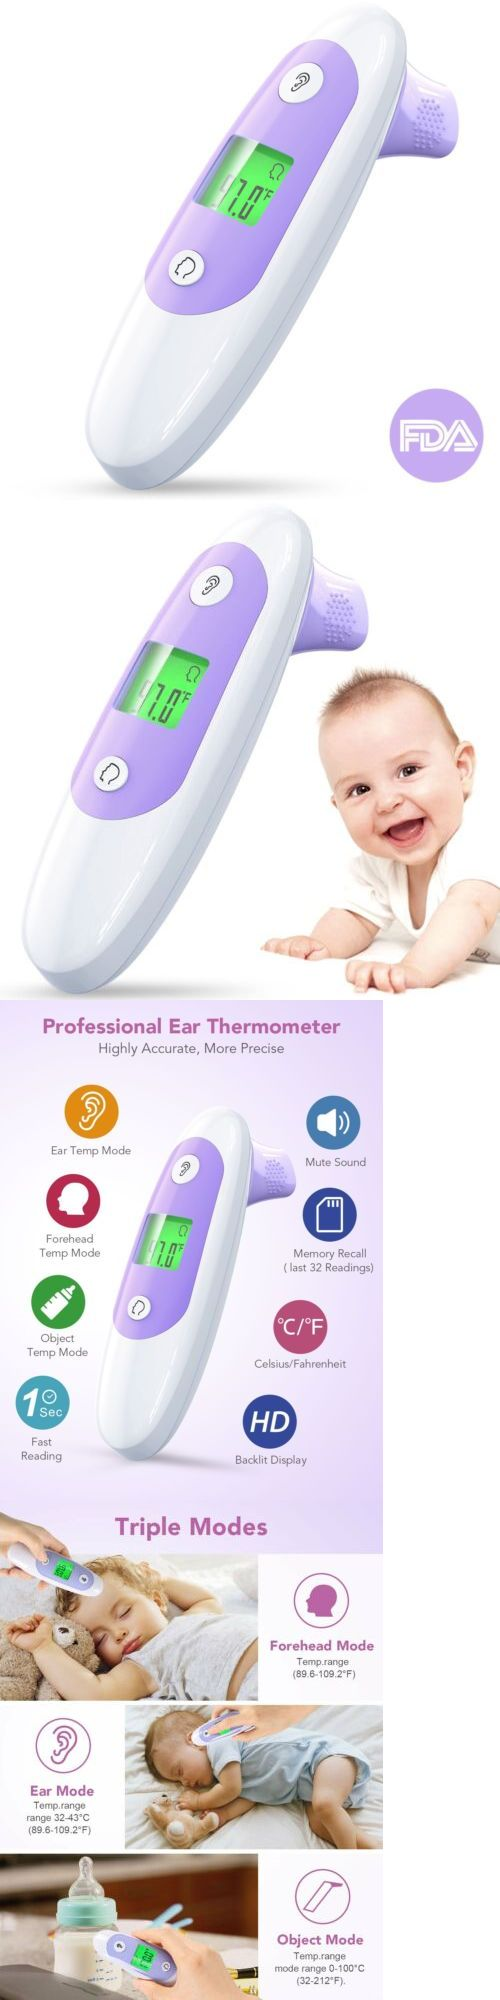 OKWINT Digital Medical Infrared Fever 4 in 1 Baby Ear and Forehead Thermometer